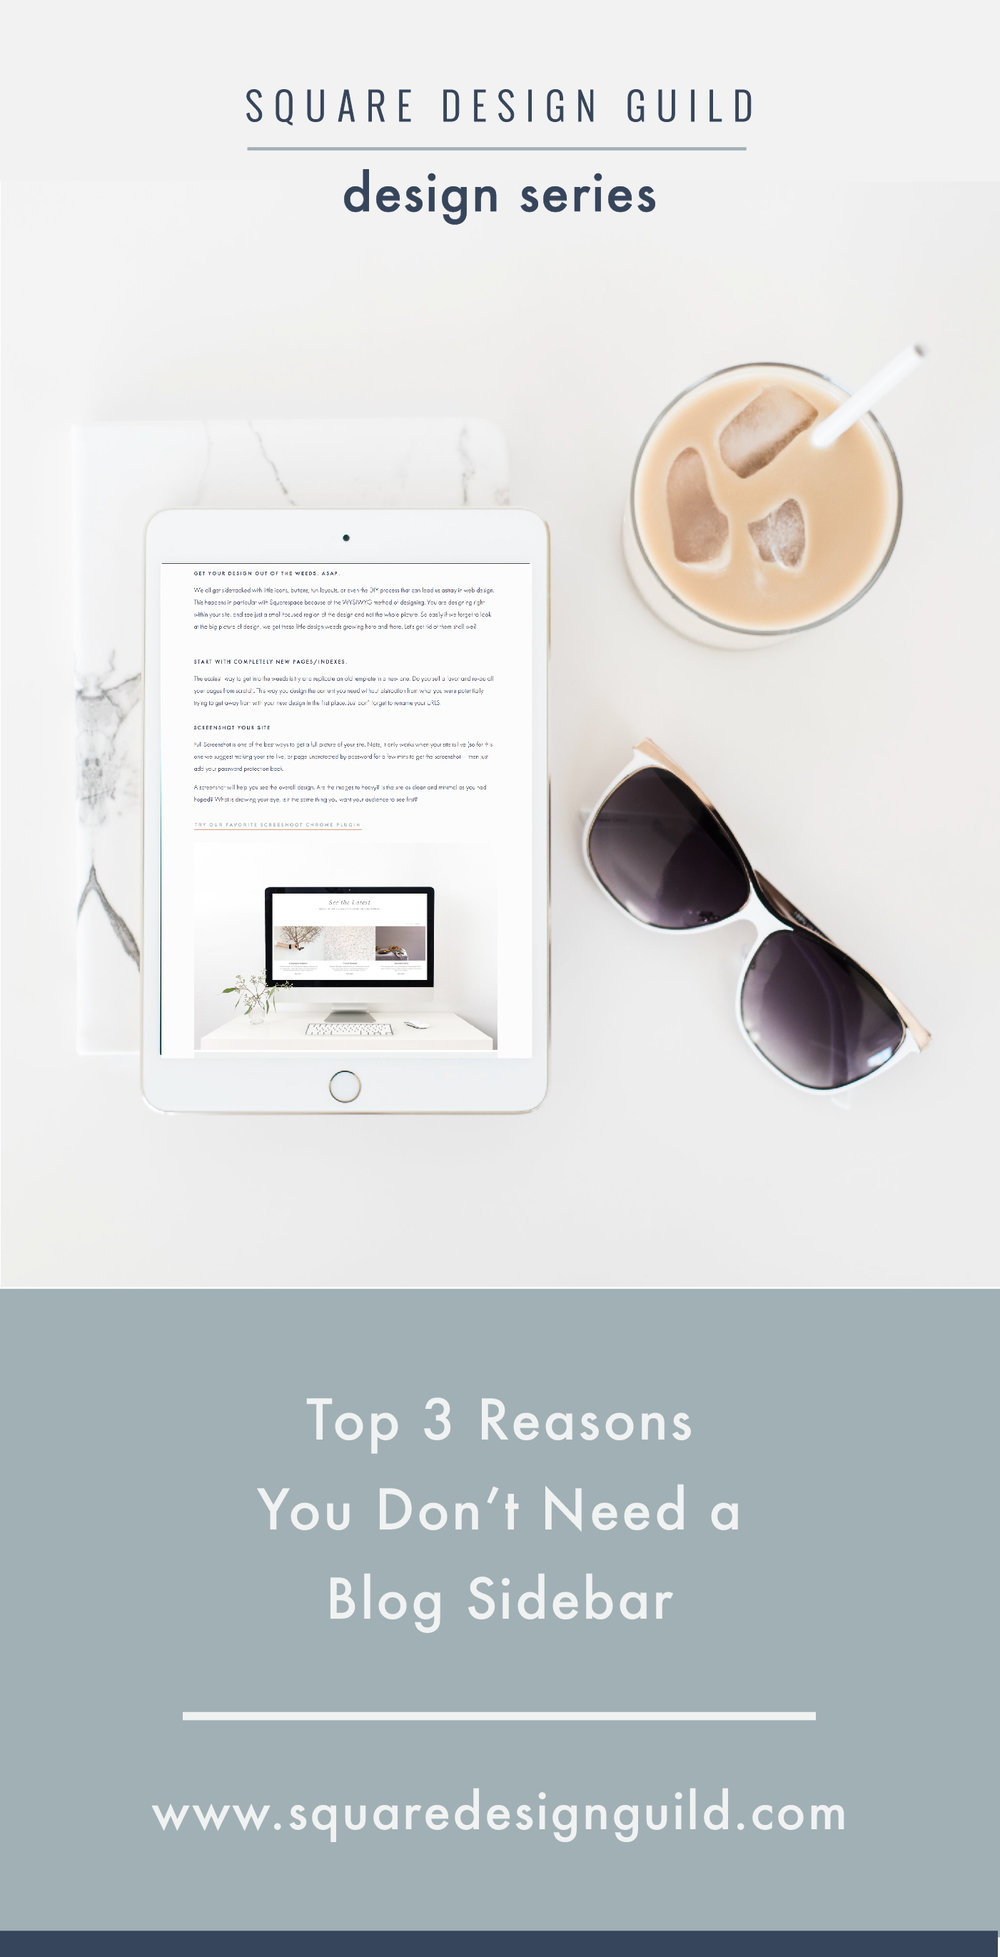 Square Design Guild | Squarespace Design Series | Top Three Reasons You Don't Need a Blog Sidebar